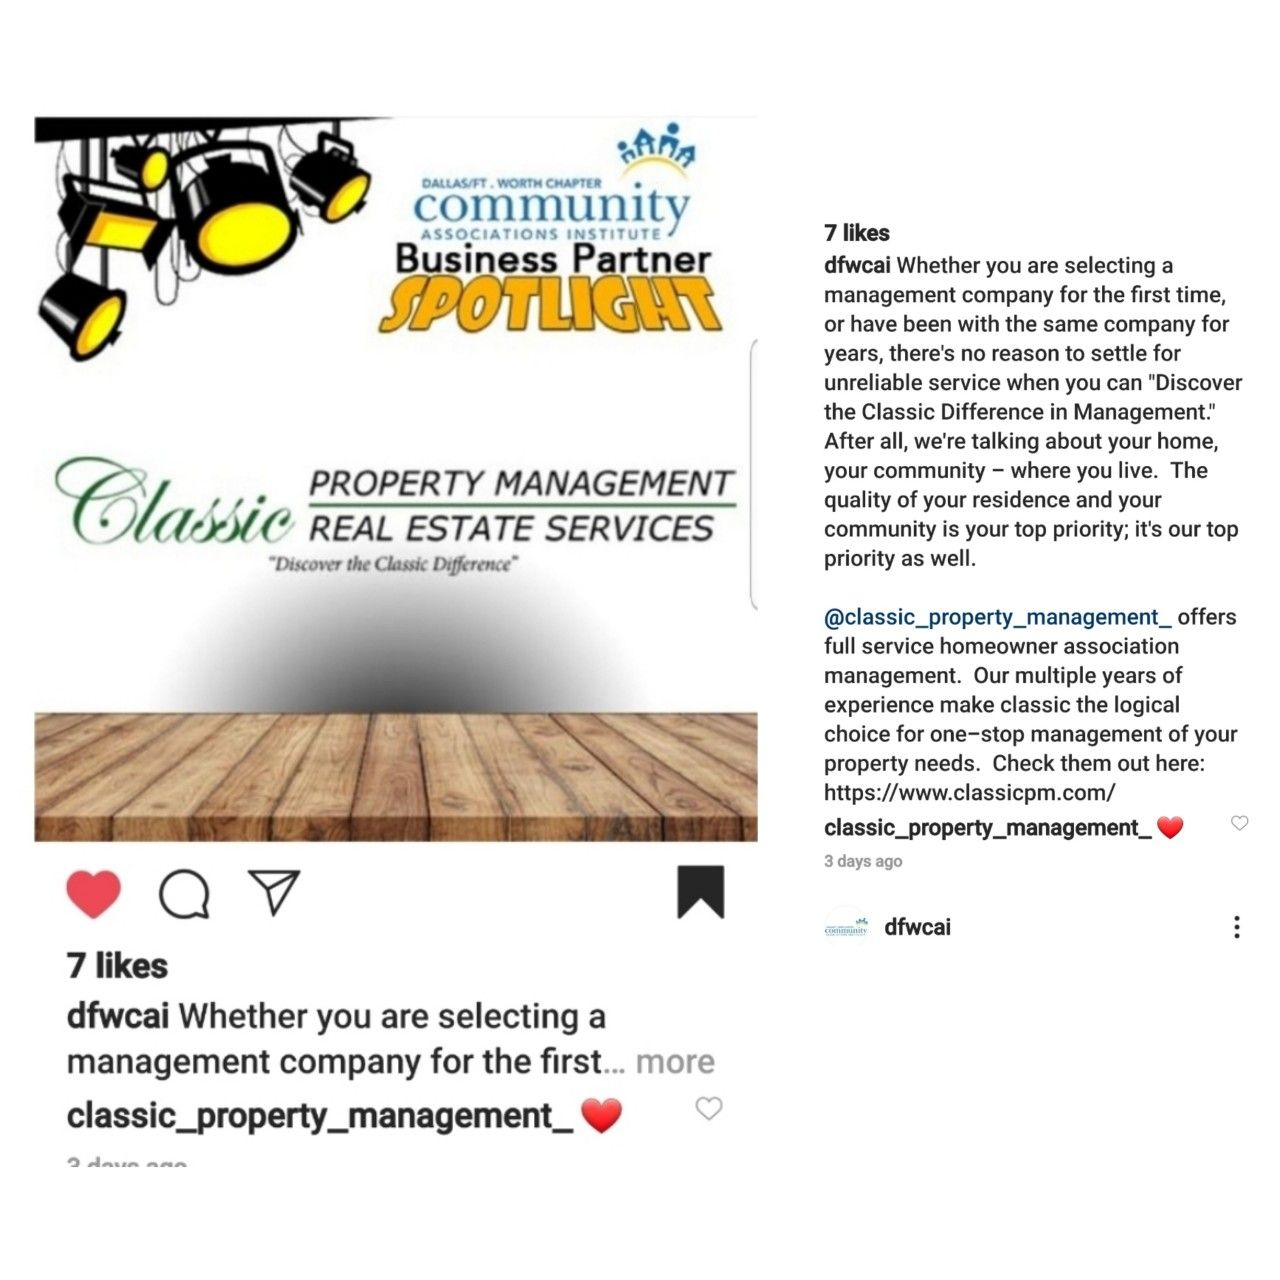 Classic Property Management Aamc Classic Real Estate Services In 2020 Association Management Property Management Real Estate Services